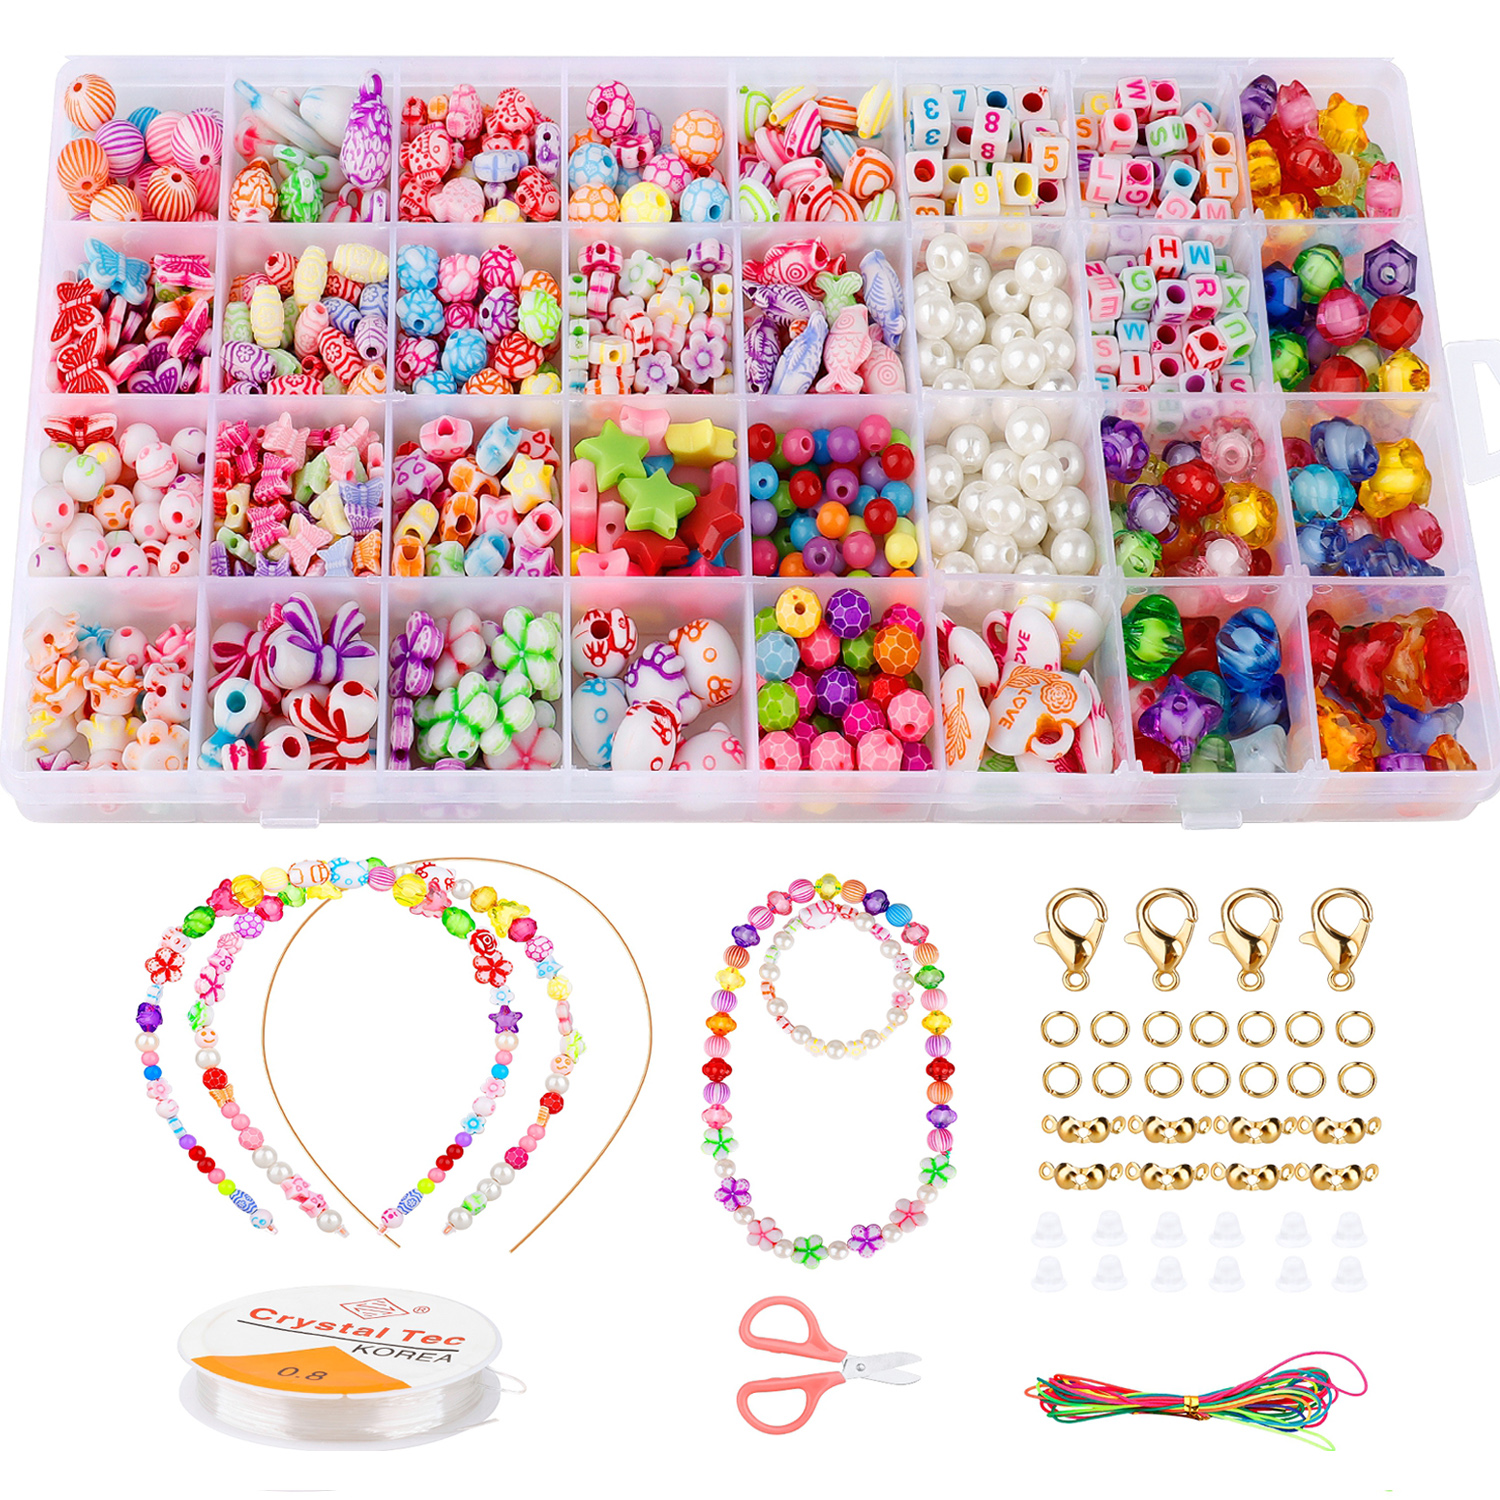 32 Grids Kids Colorful Acrylic Beads Set Box Toy Jewelry Making DIY Beaded Bracelets Necklaces String Threading Educational Gift